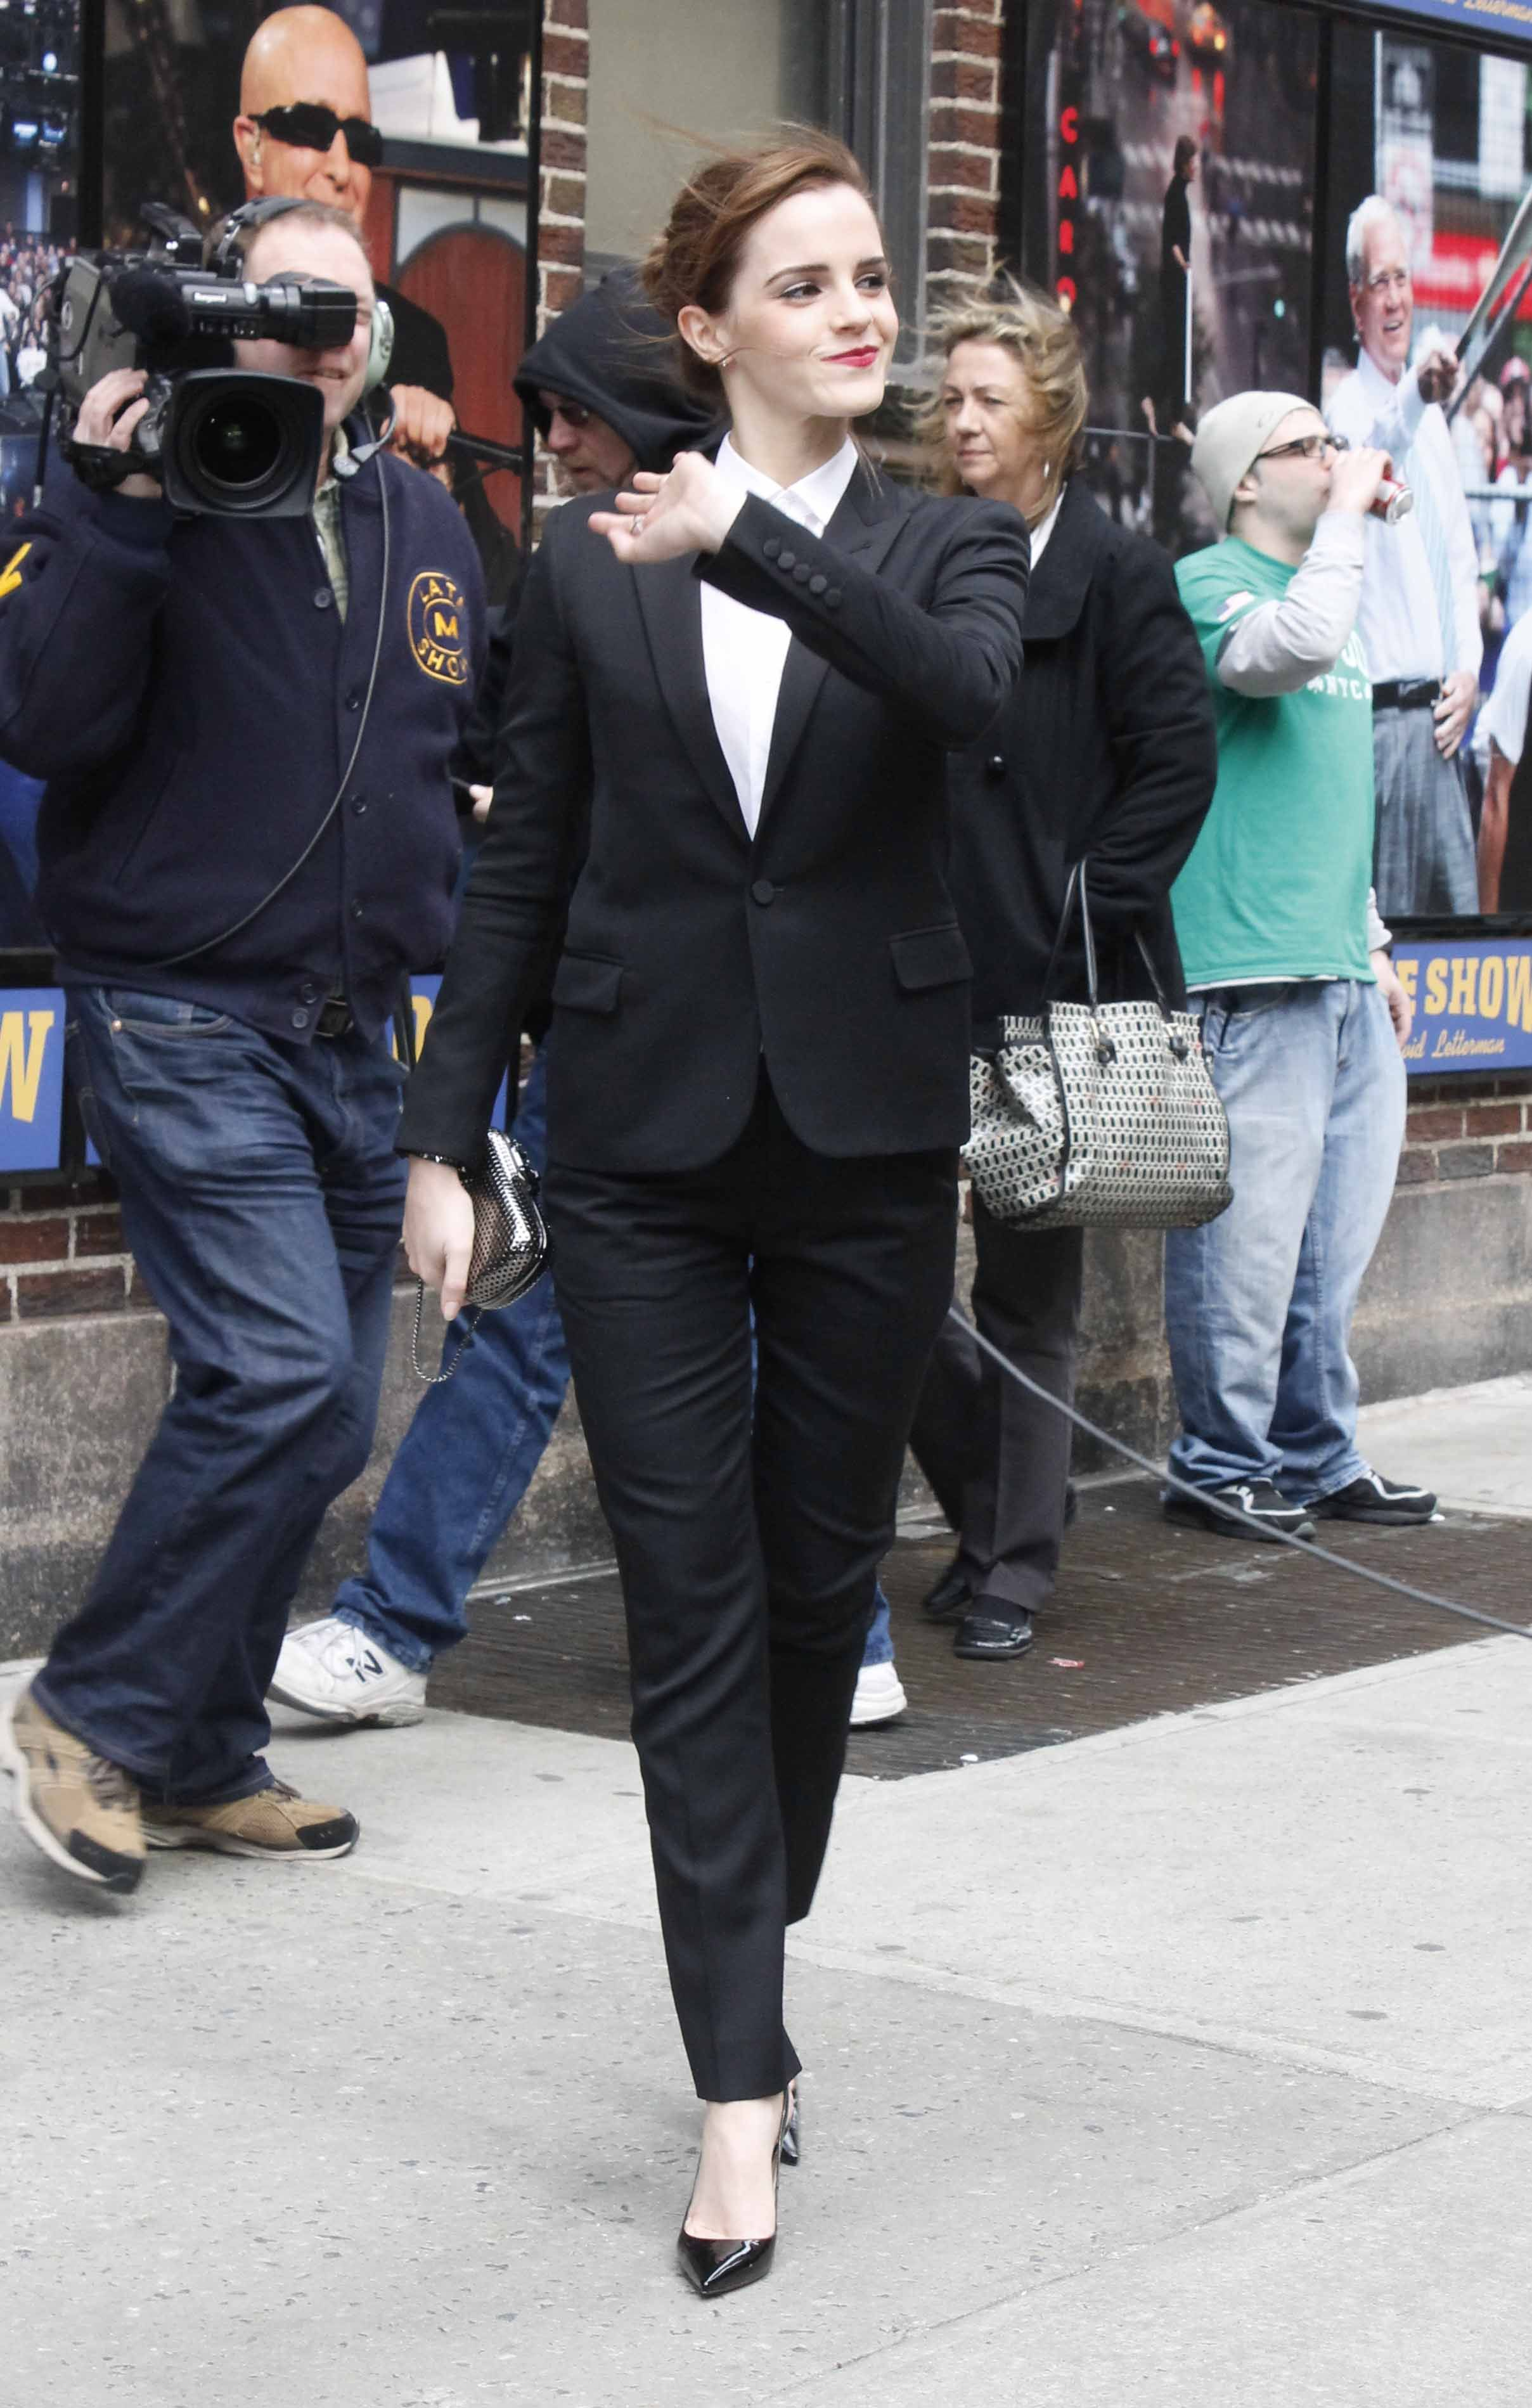 Spotted arriving at the Late Show with David Letterman in New York